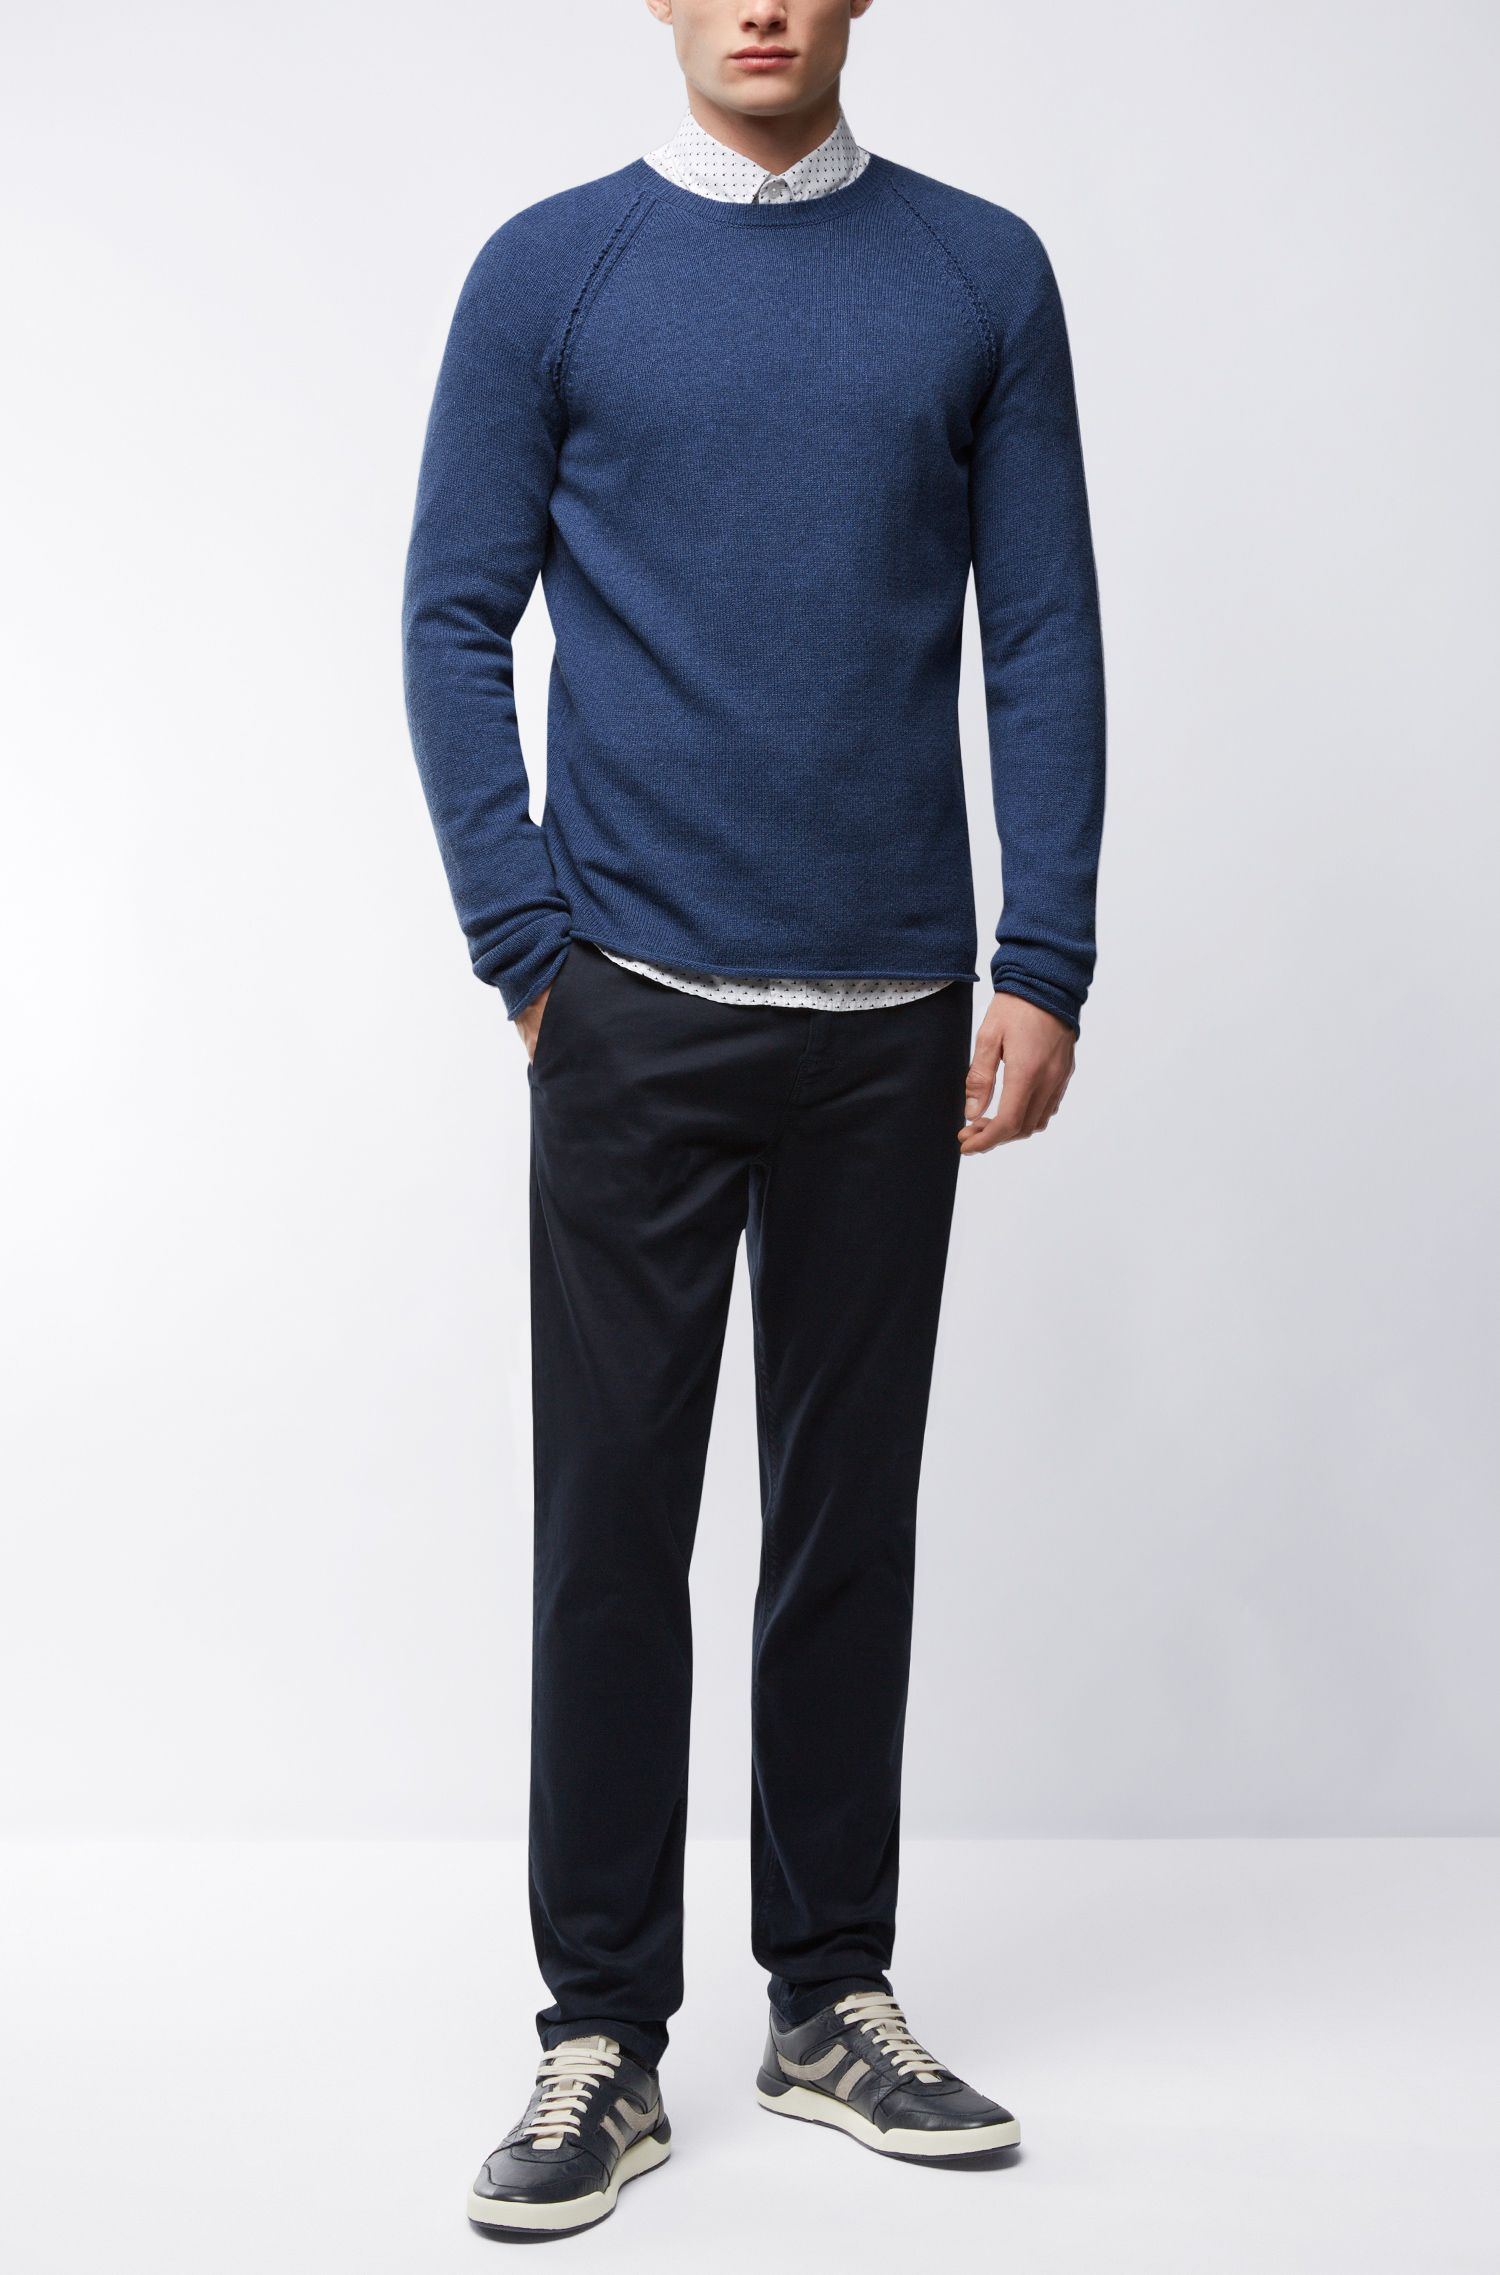 Wool-Cotton Blend Sweater | Kohedge, Dark Blue